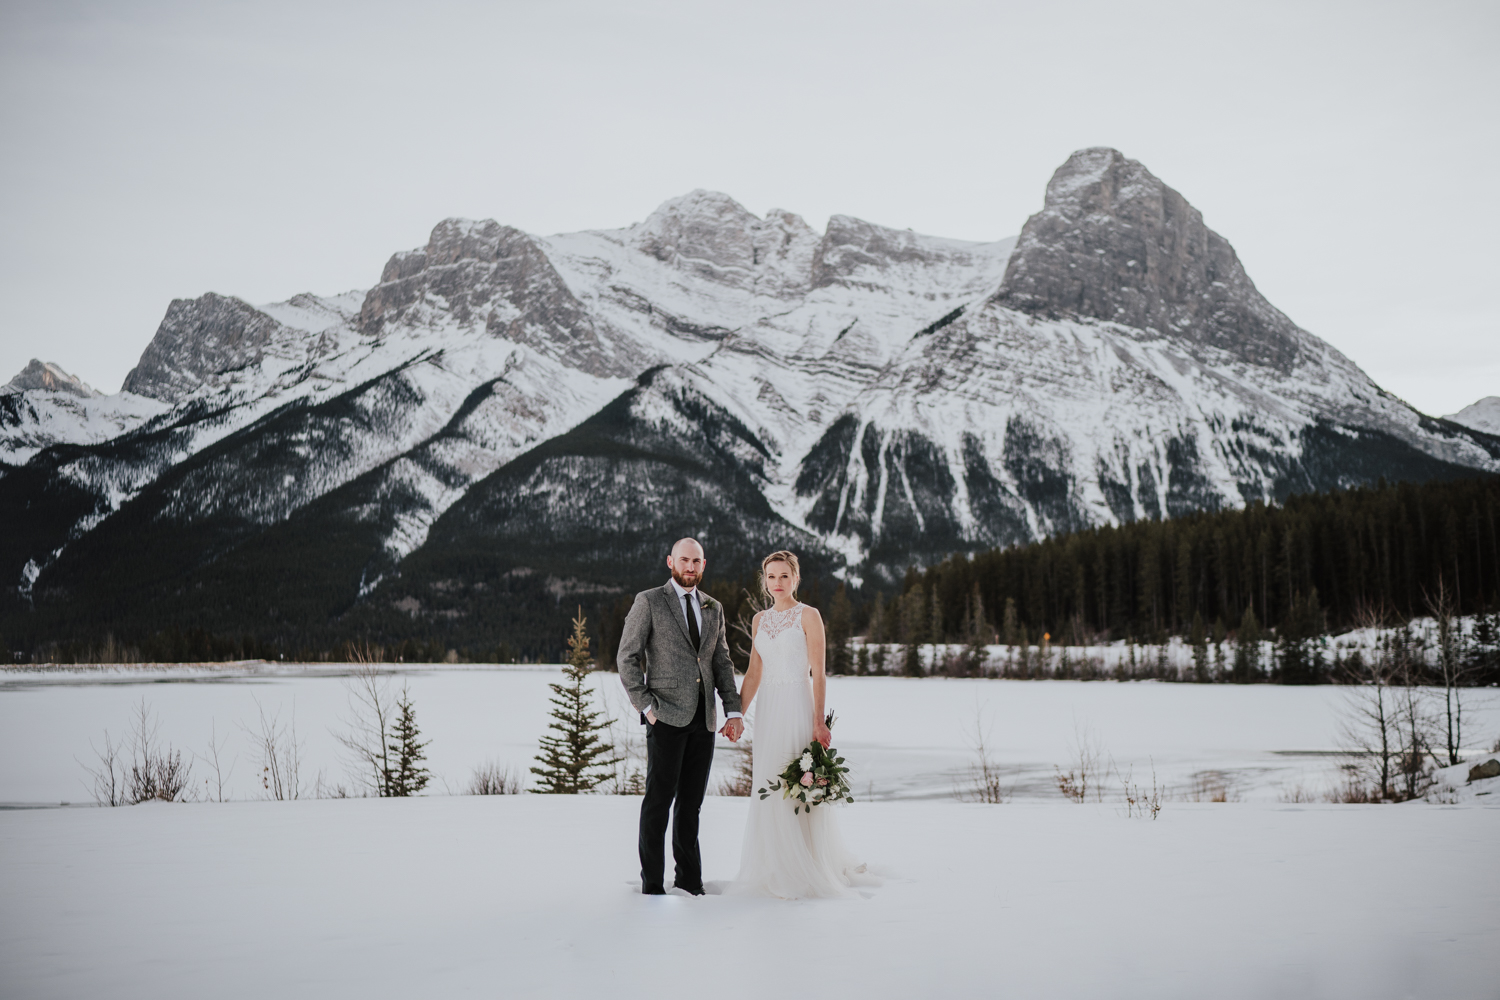 Canmore-Wedding-Photographer-63.jpg